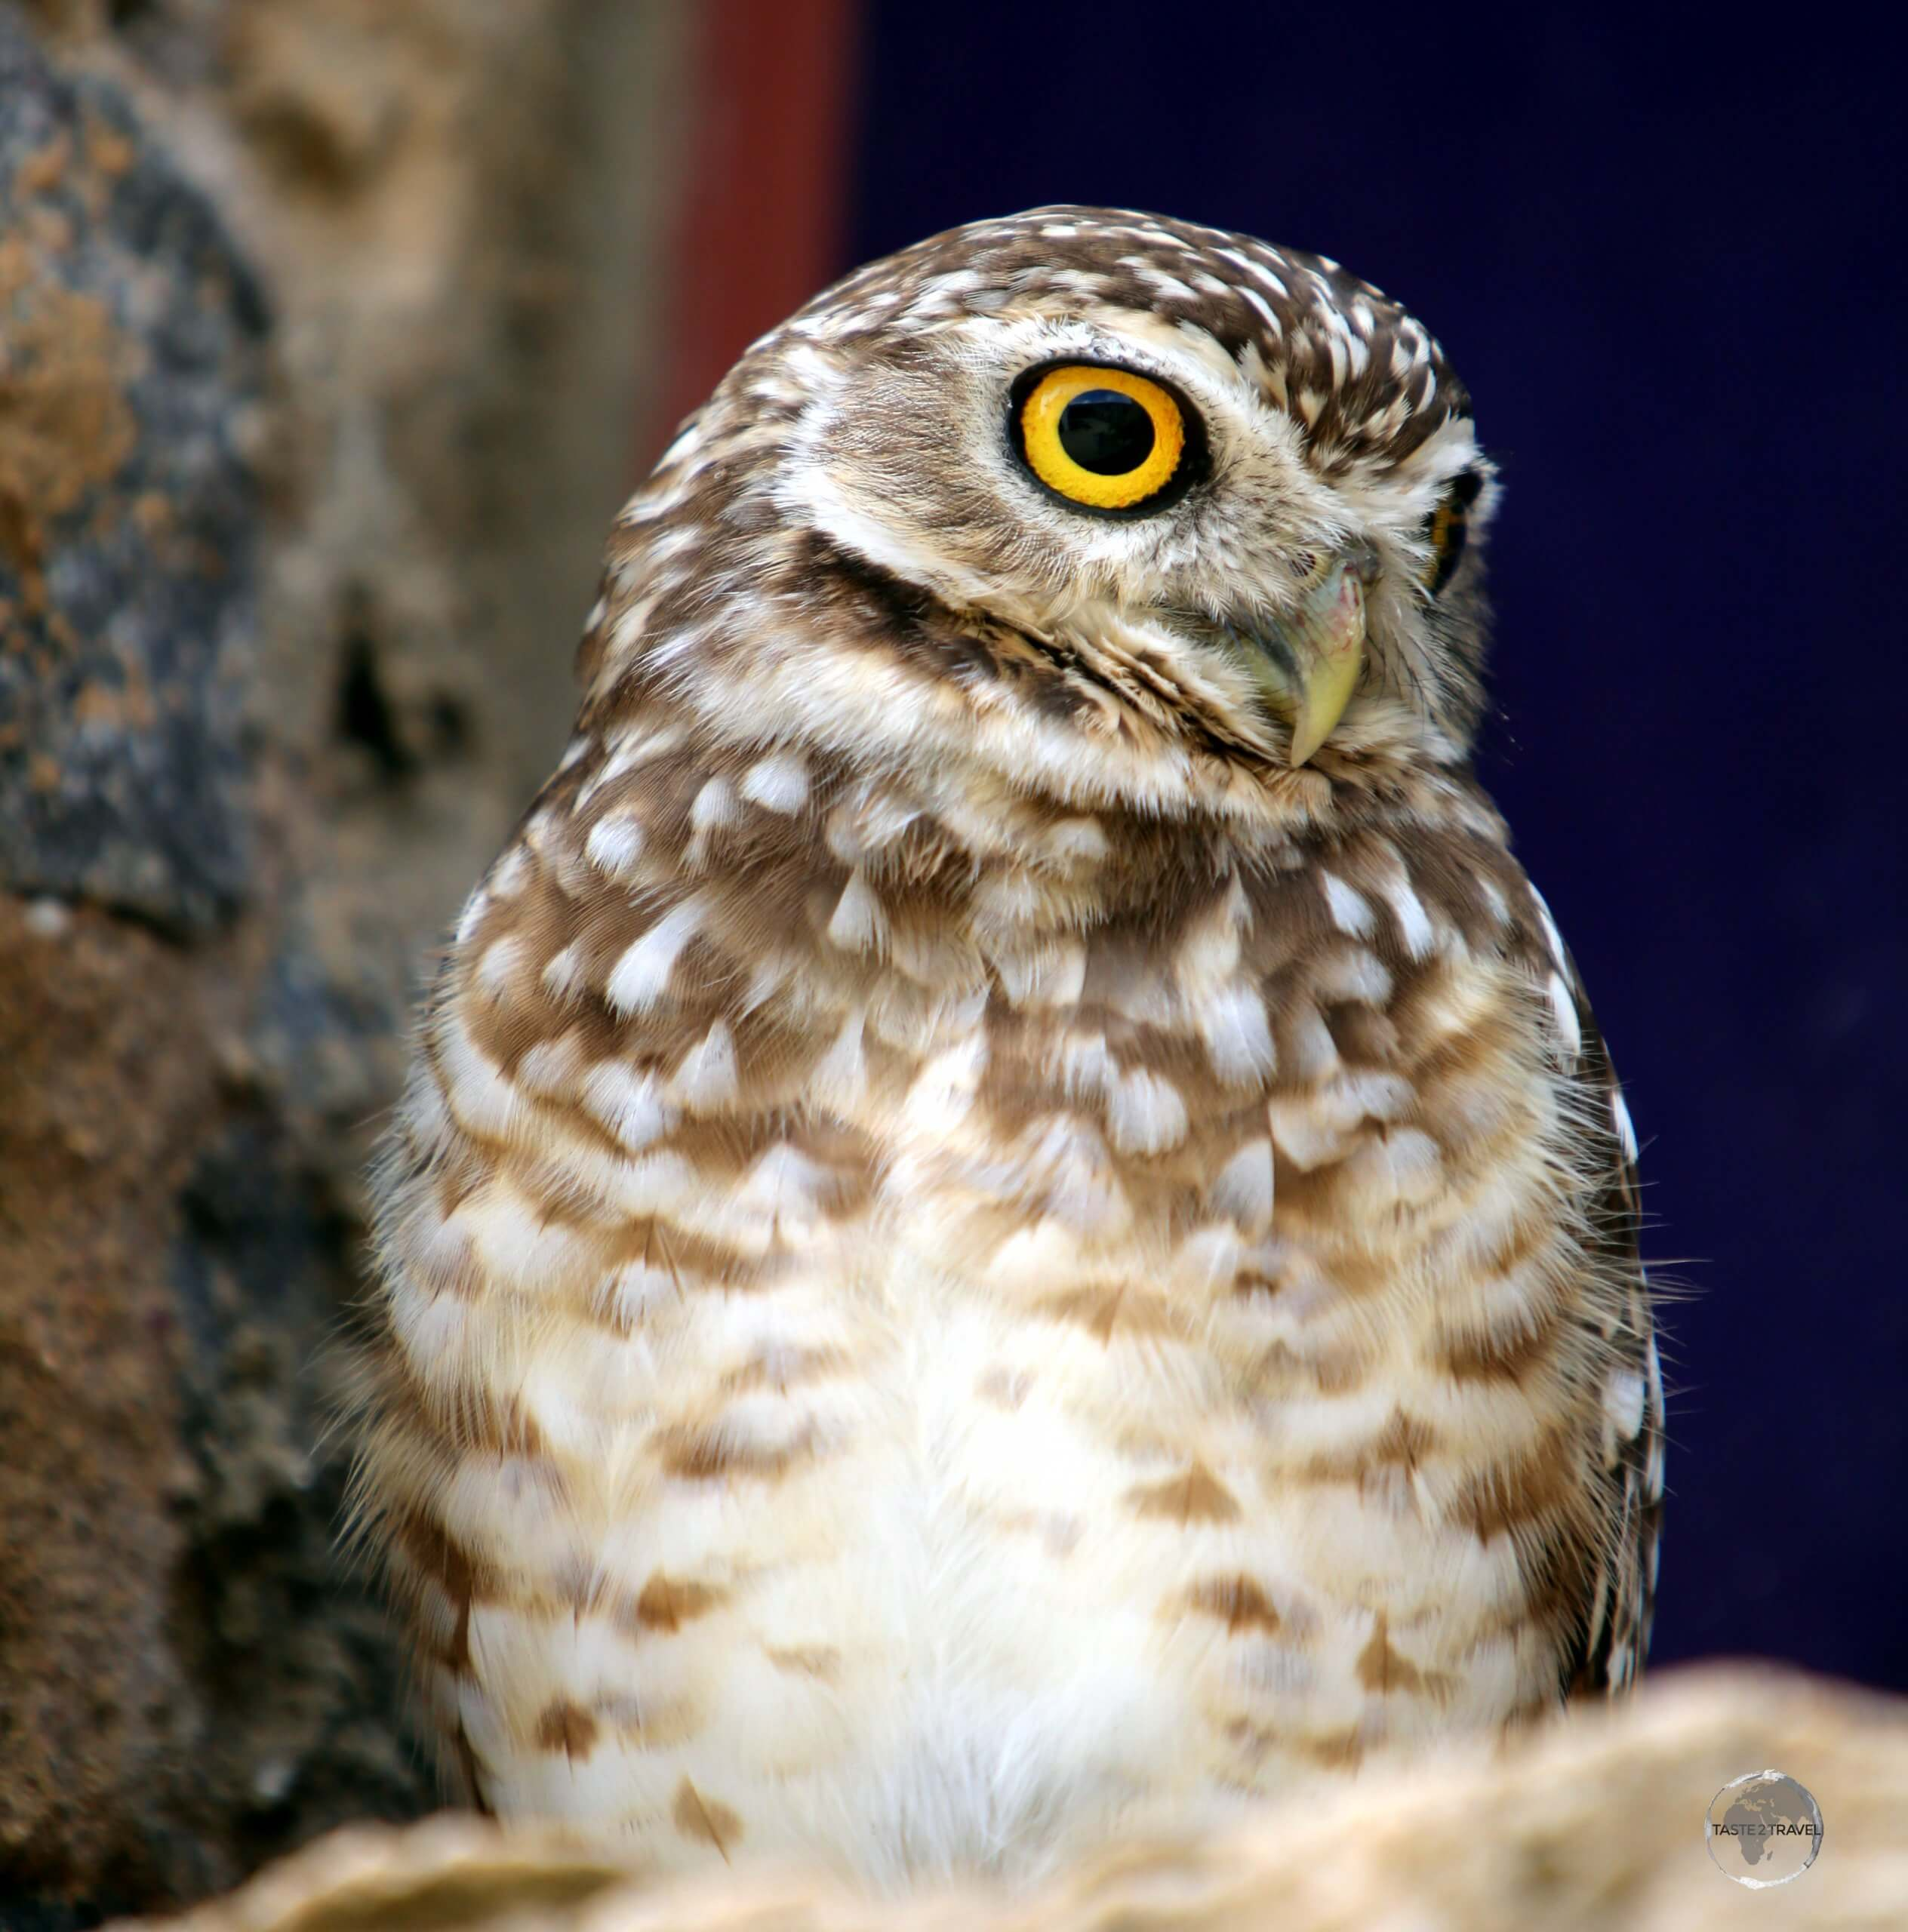 A Burrowing owl at Forte dos Reis Magos, a Portuguese fortress located in the city of Natal in the Brazilian state of Rio Grande do Norte.